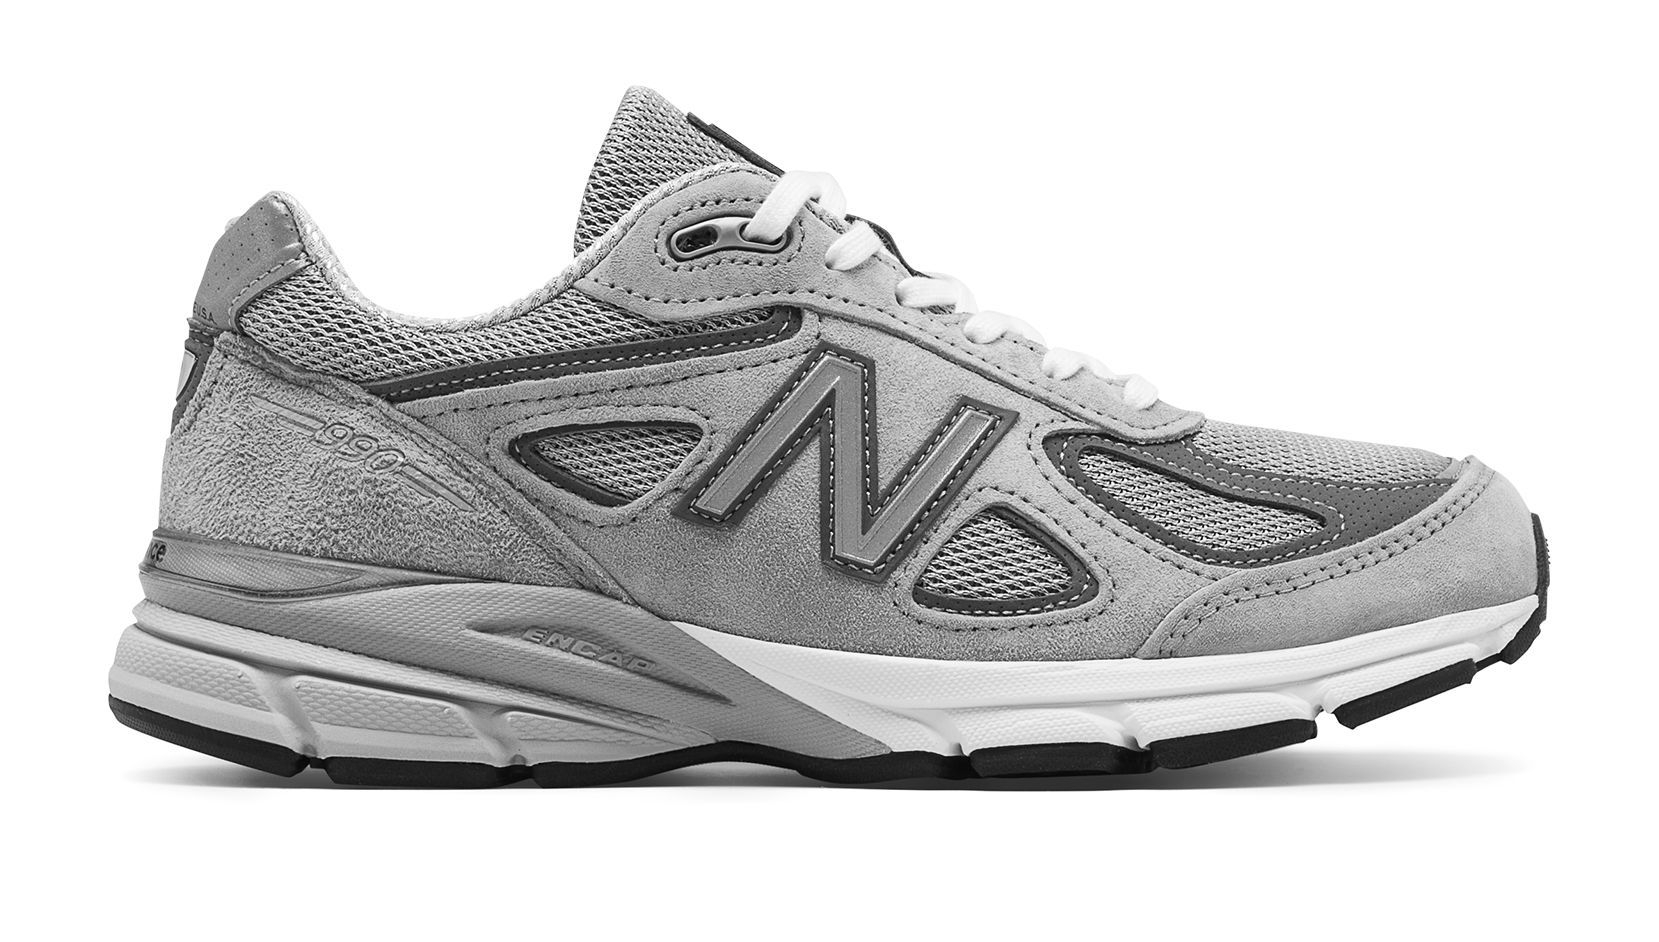 New Balance 990v4 Made in US, Grey with Castlerock (With ...